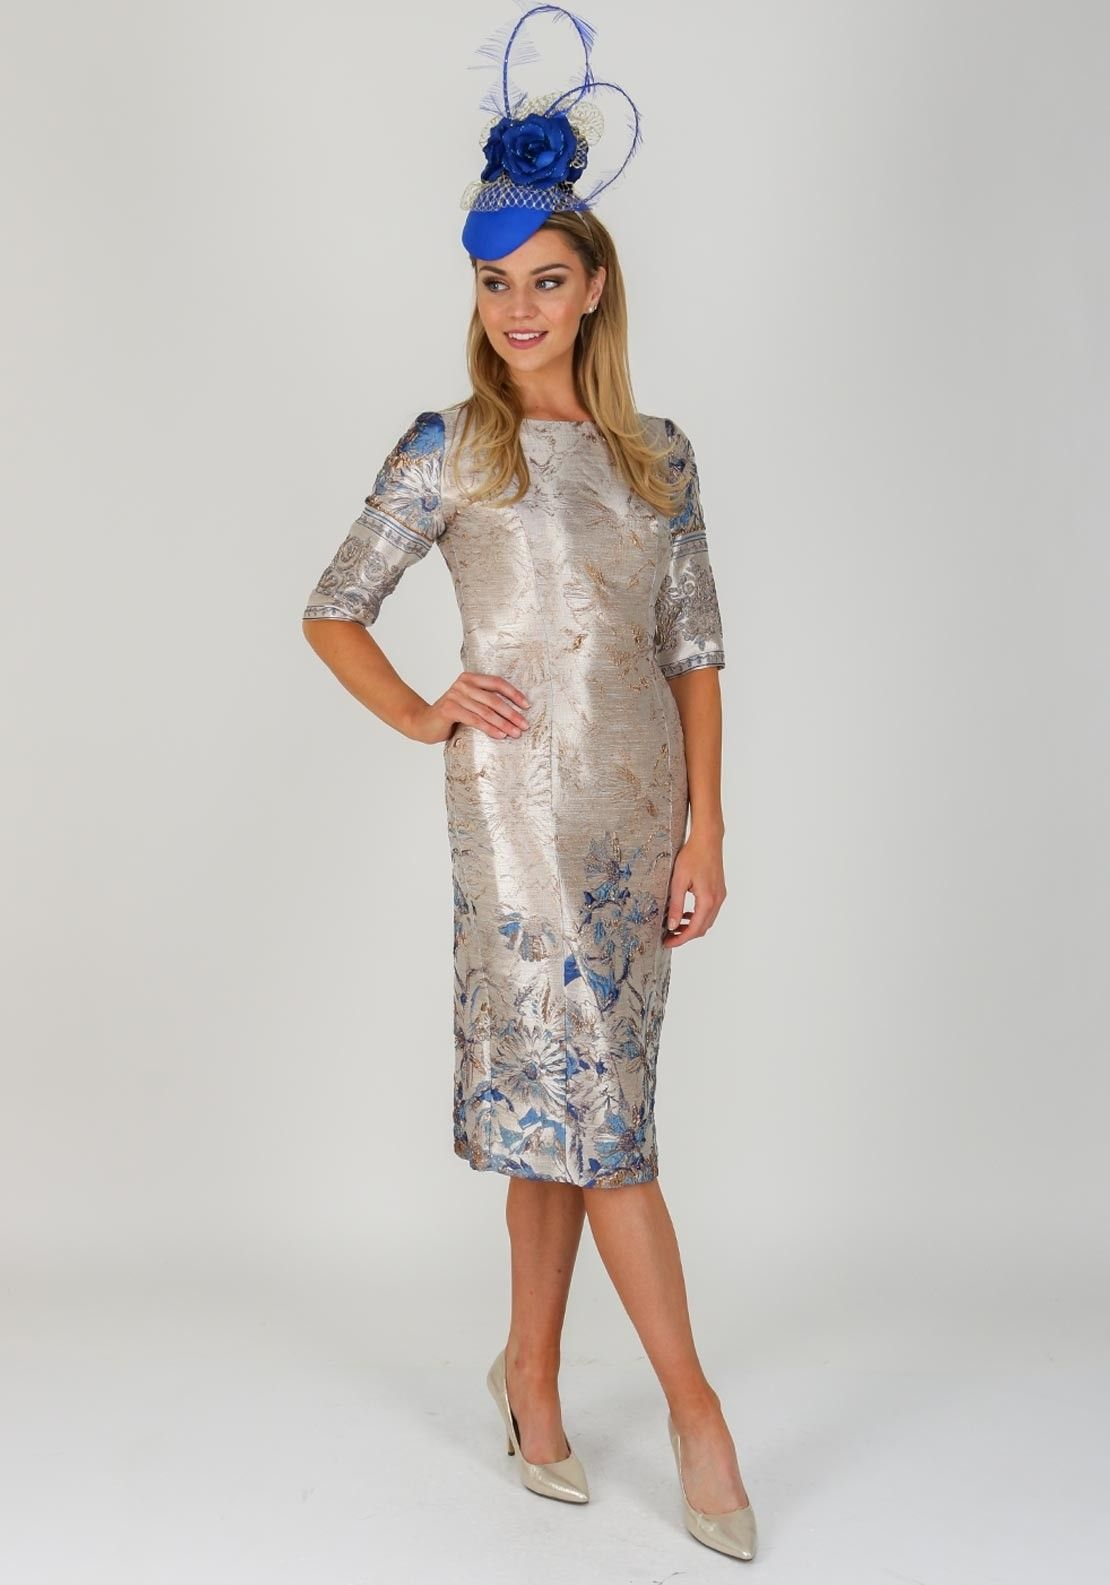 d1b8d4592a22 Featuring an ornate blue and bronze floral inspired embossed print  throughout, this chic gold dress from Fely Campo would be a luxurious  choice for a